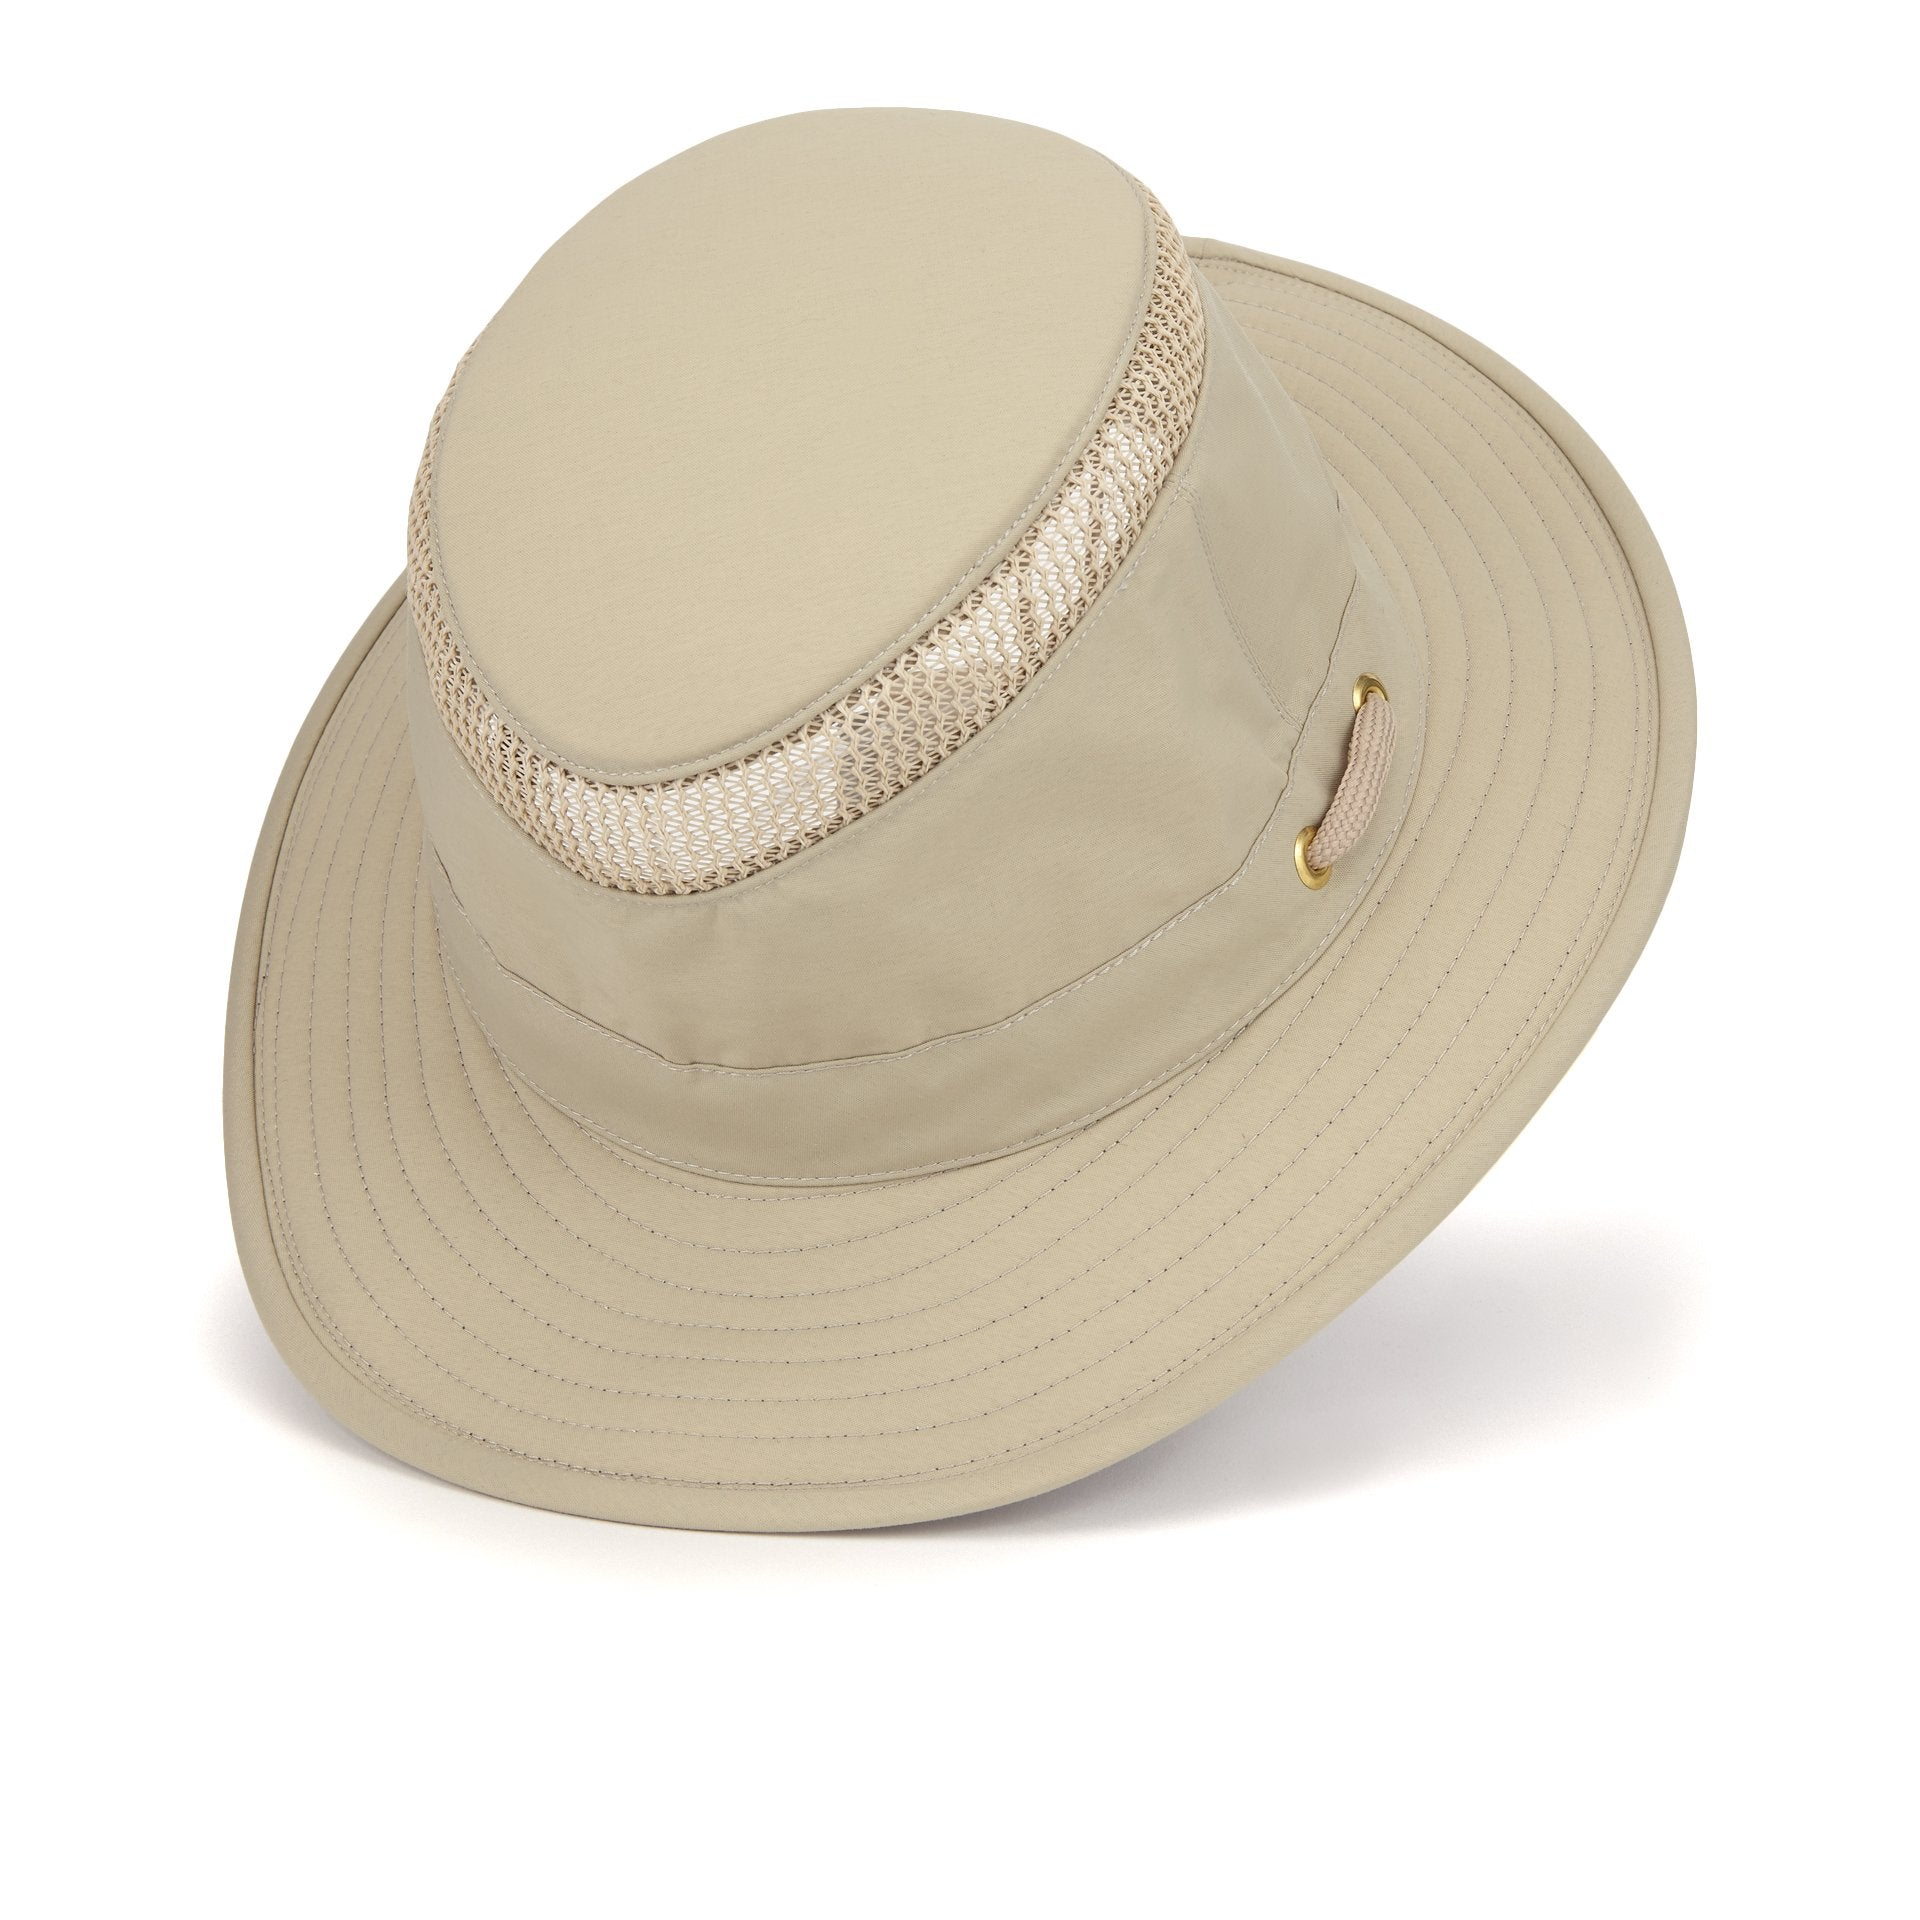 Tilley Airflo Hat - Men's Bucket hats - Lock & Co. Hatters London UK